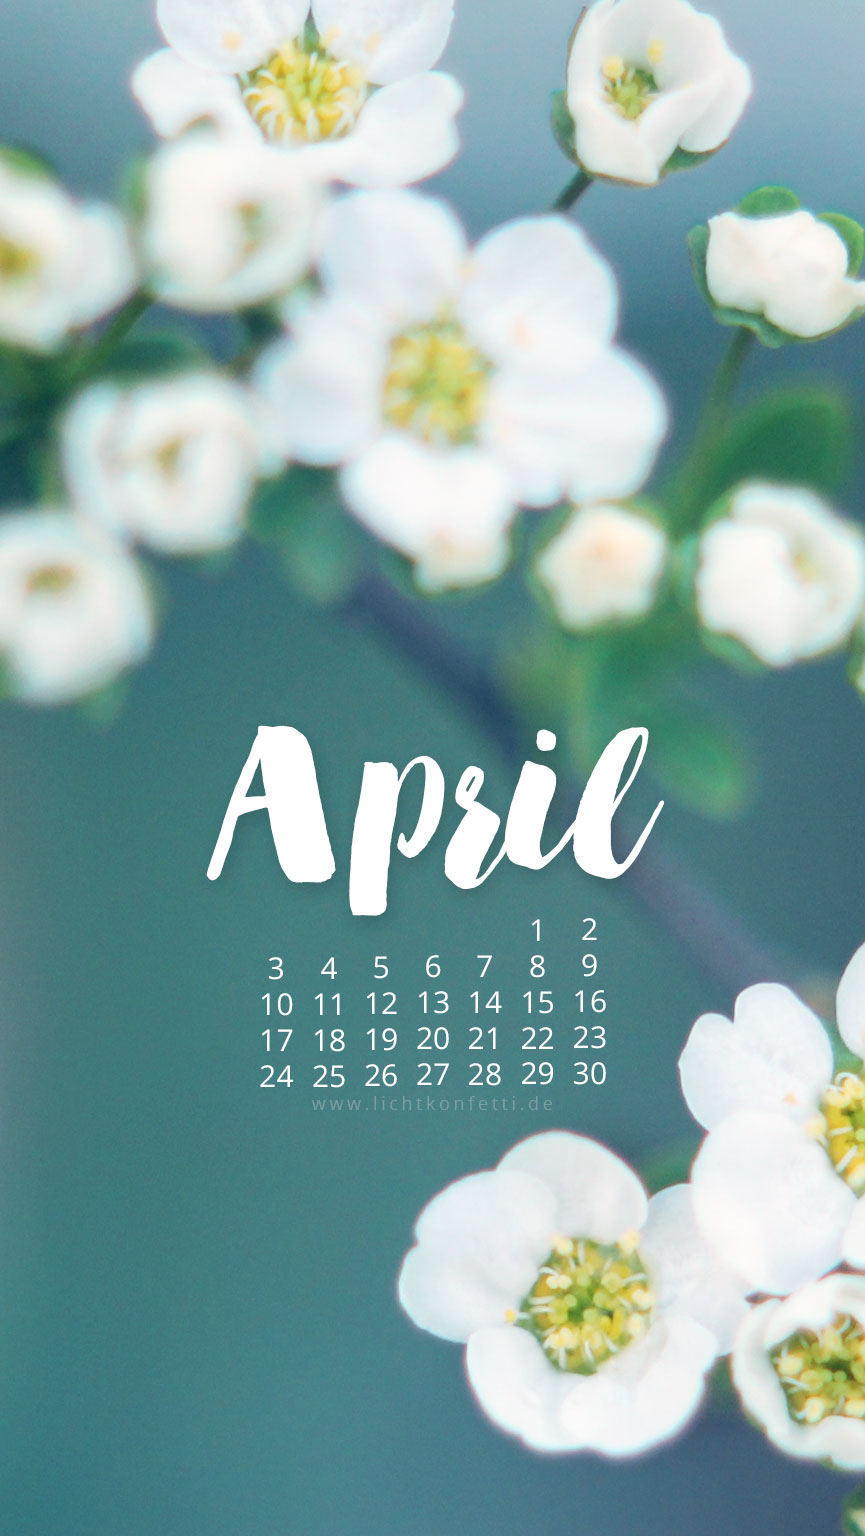 free Wallpaper April 2017 iPhone - Frühling Blüte